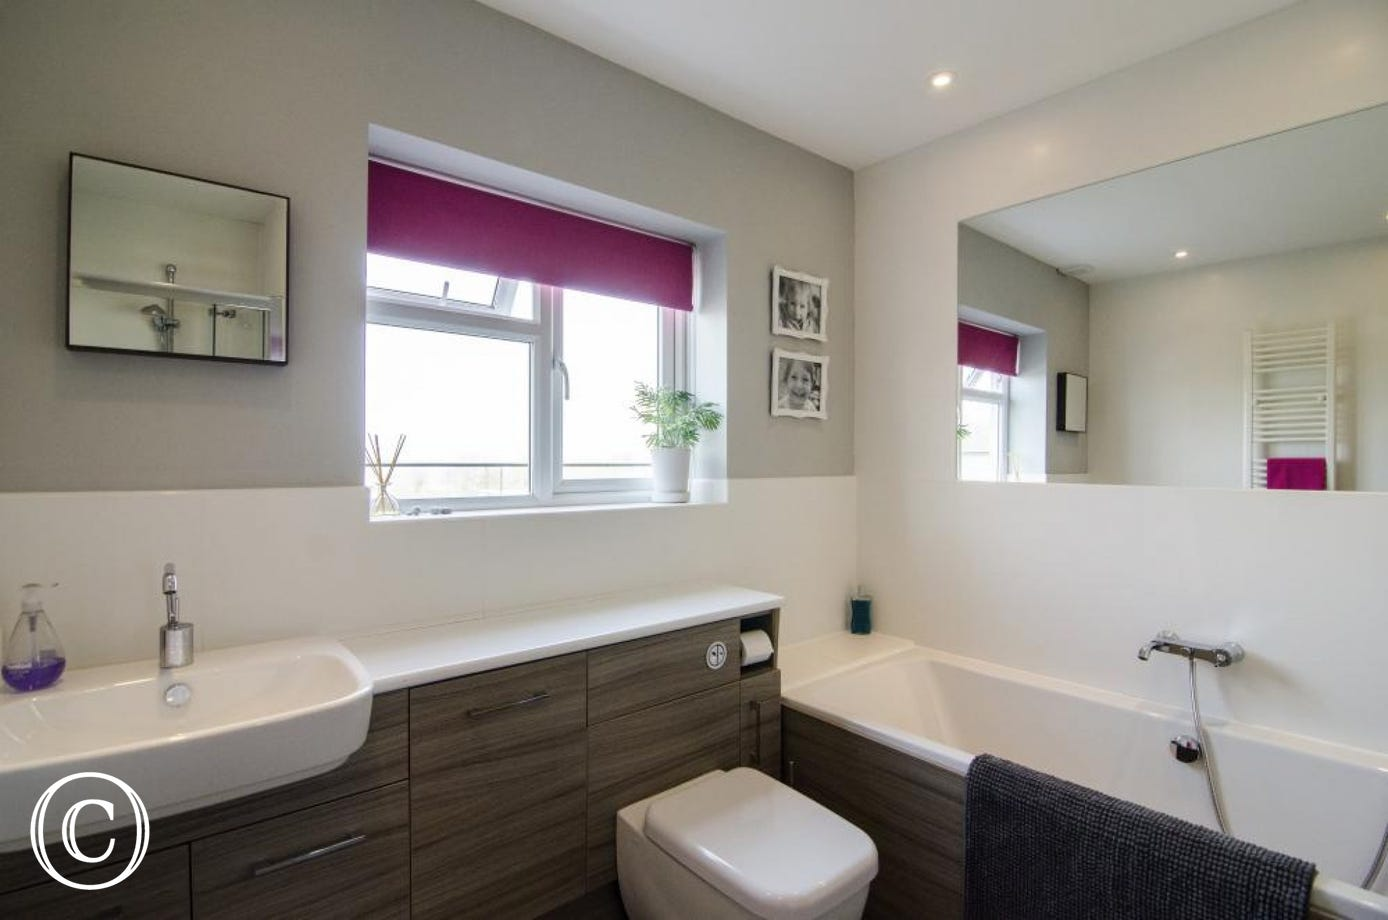 Upstairs family bathroom with separate shower cubicle